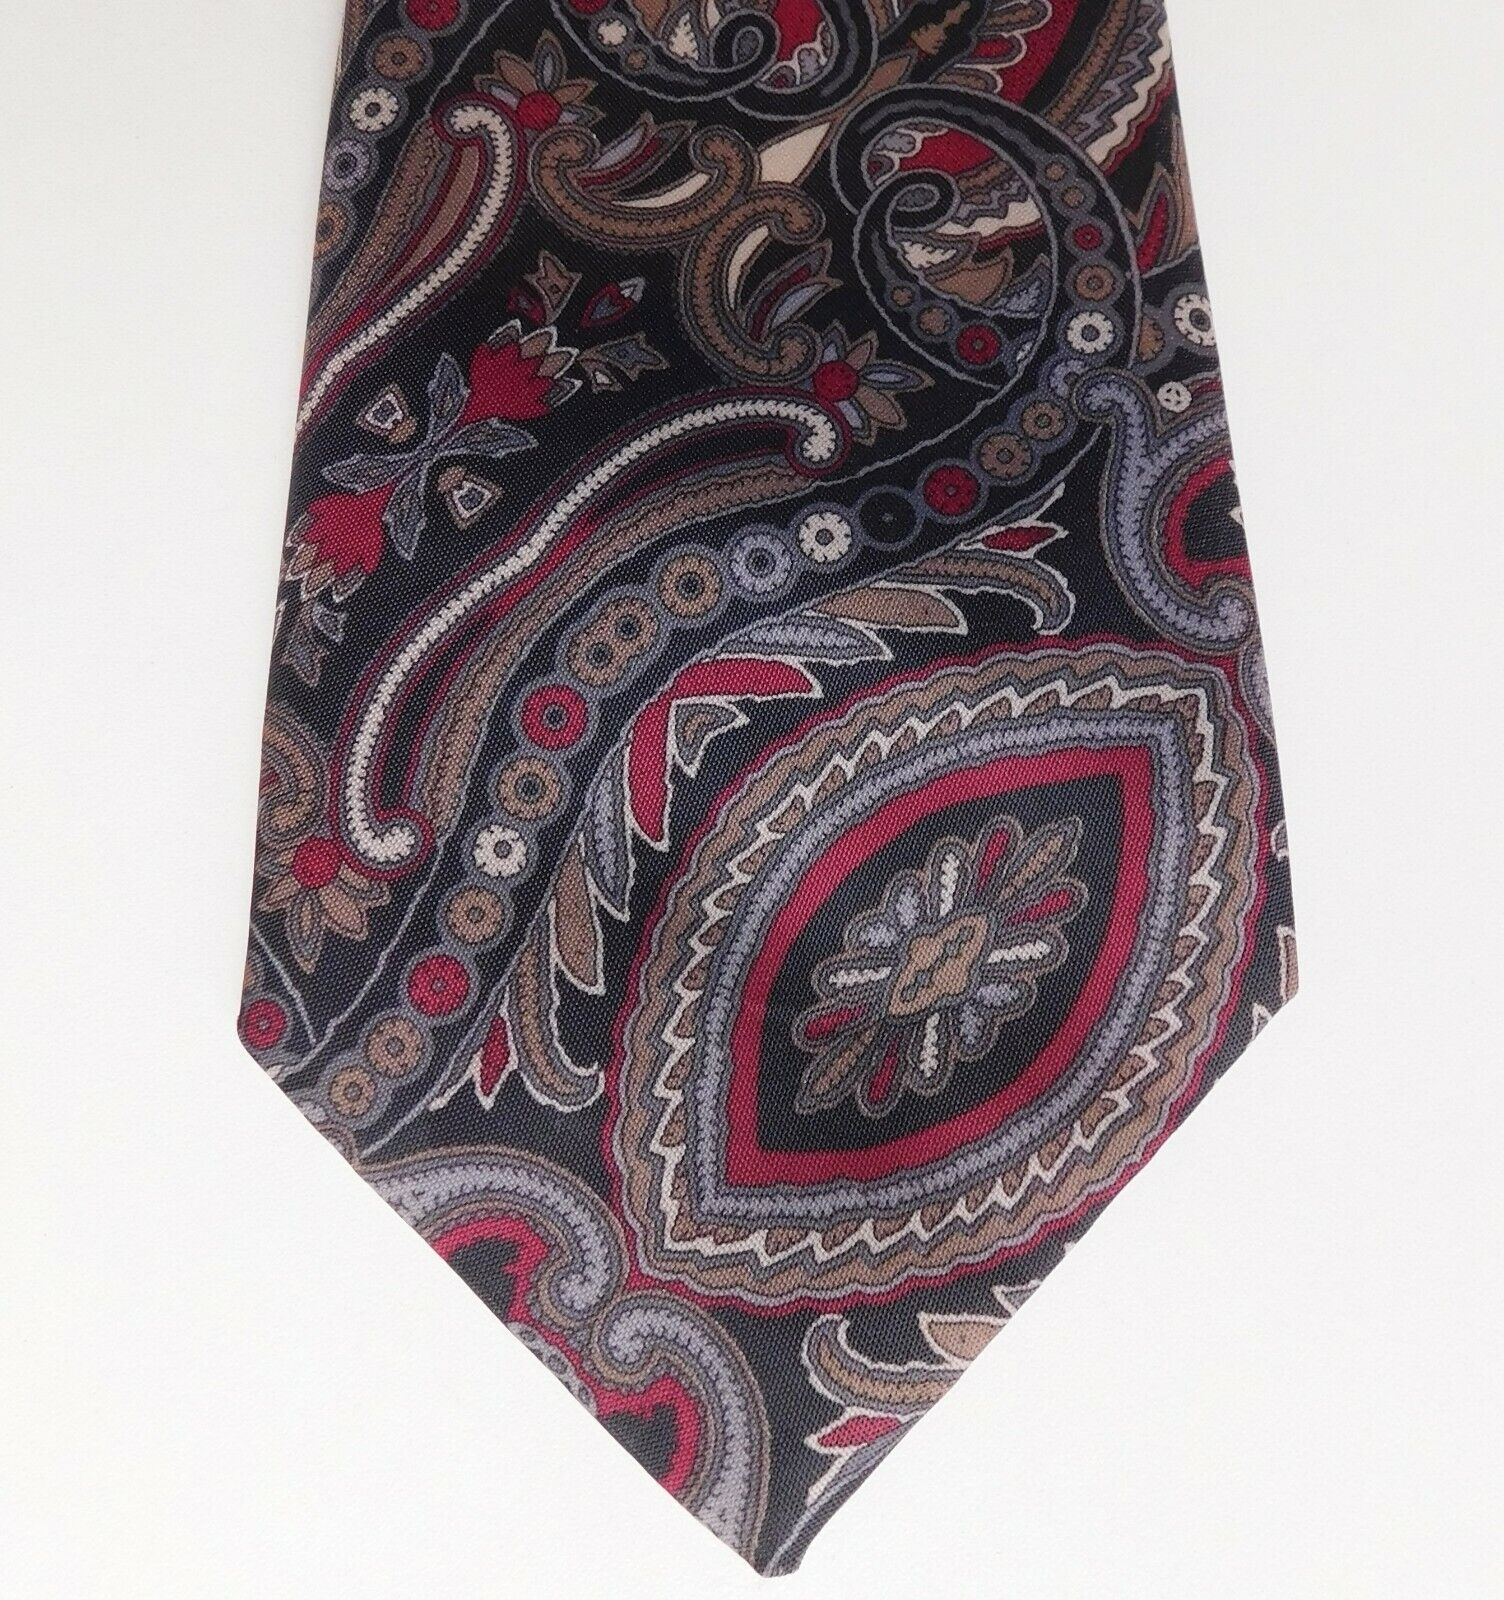 Cheap and cheerful Paisley tie made in England vintage 1970s 1980s mens wear